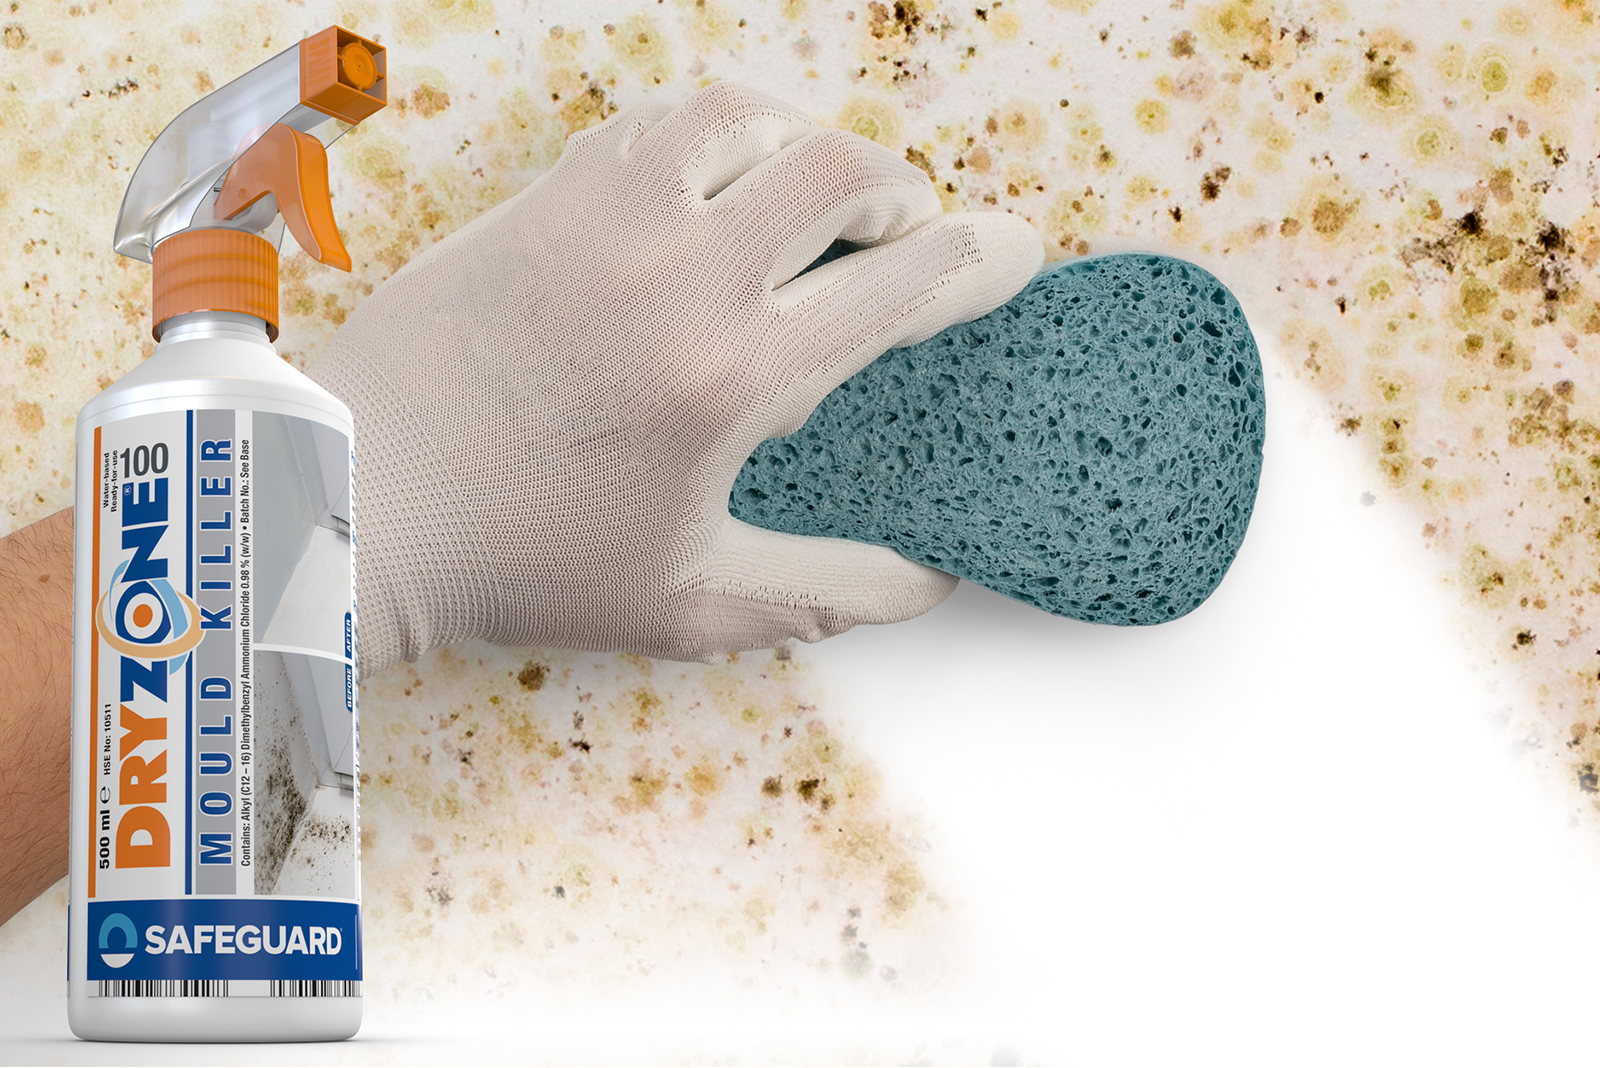 Safeguard range beats damp double of mould and condensation